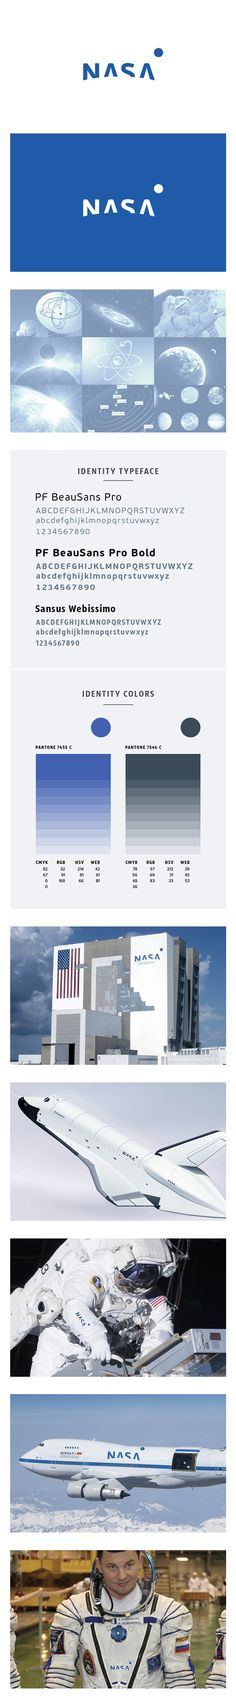 logo / NASA by Max Lapteff